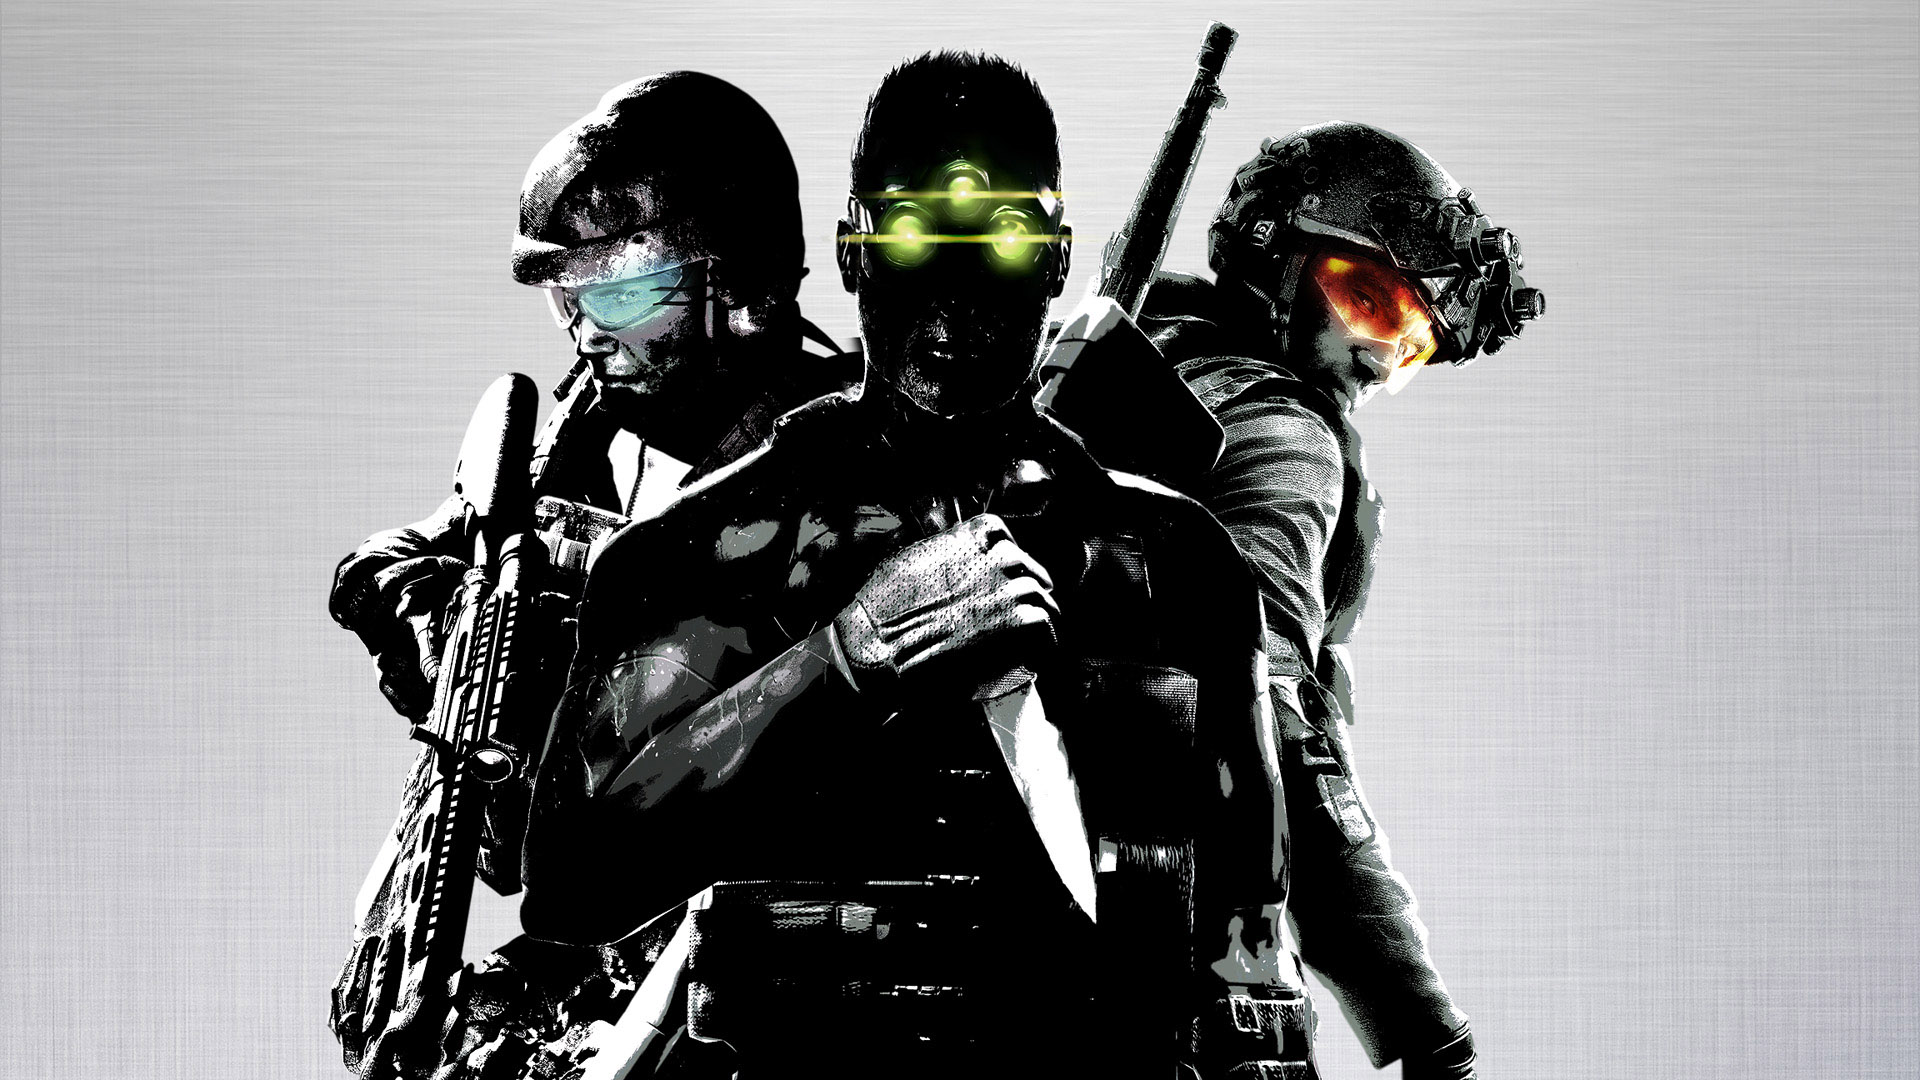 Awesome Splinter Cell Wallpaper